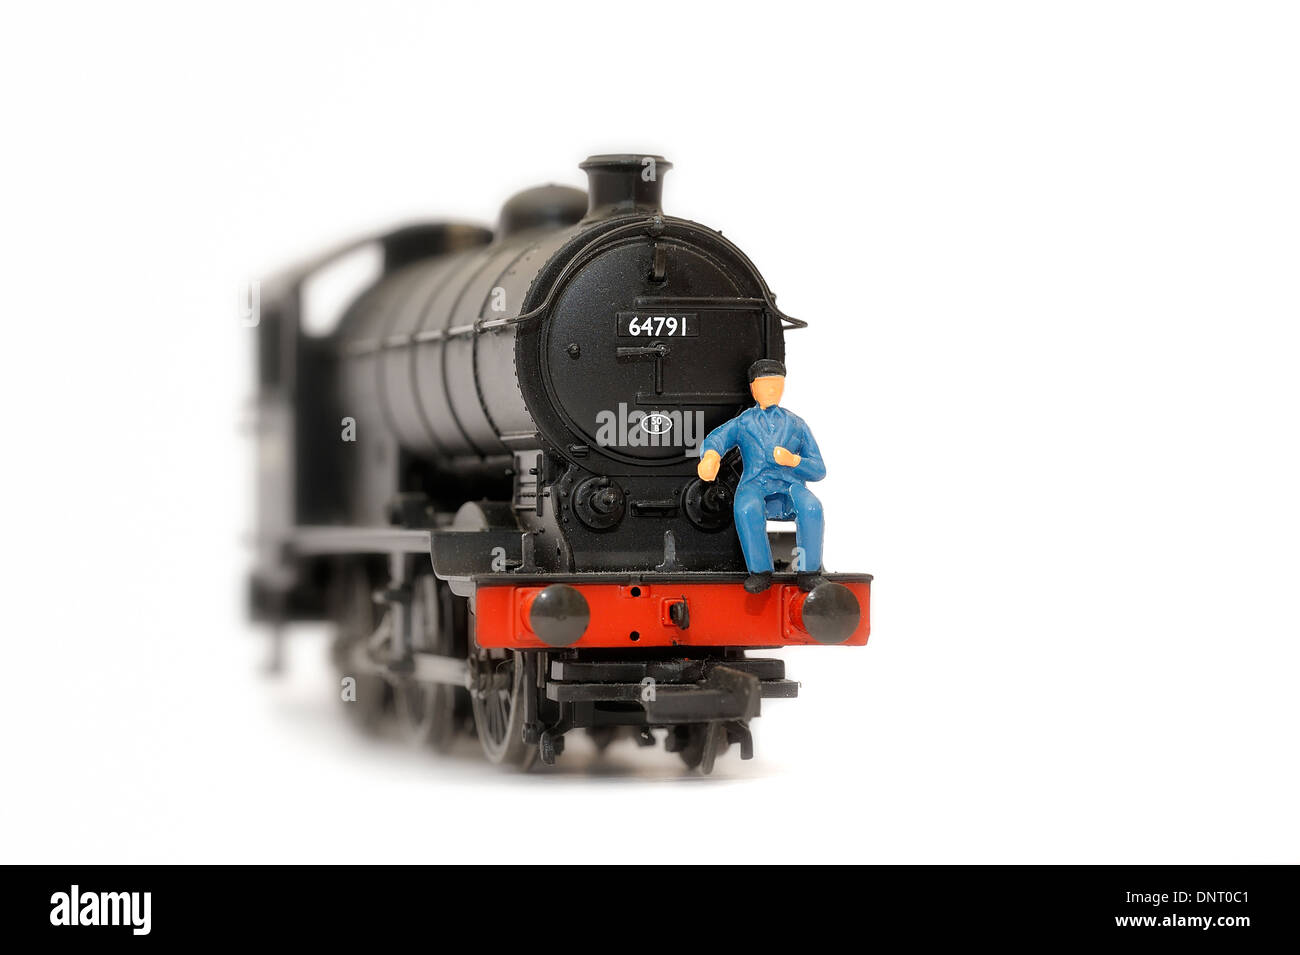 Scale Model of an old steam locomotive J39 CLASS 64791 with driver sitting on the front Stock Photo